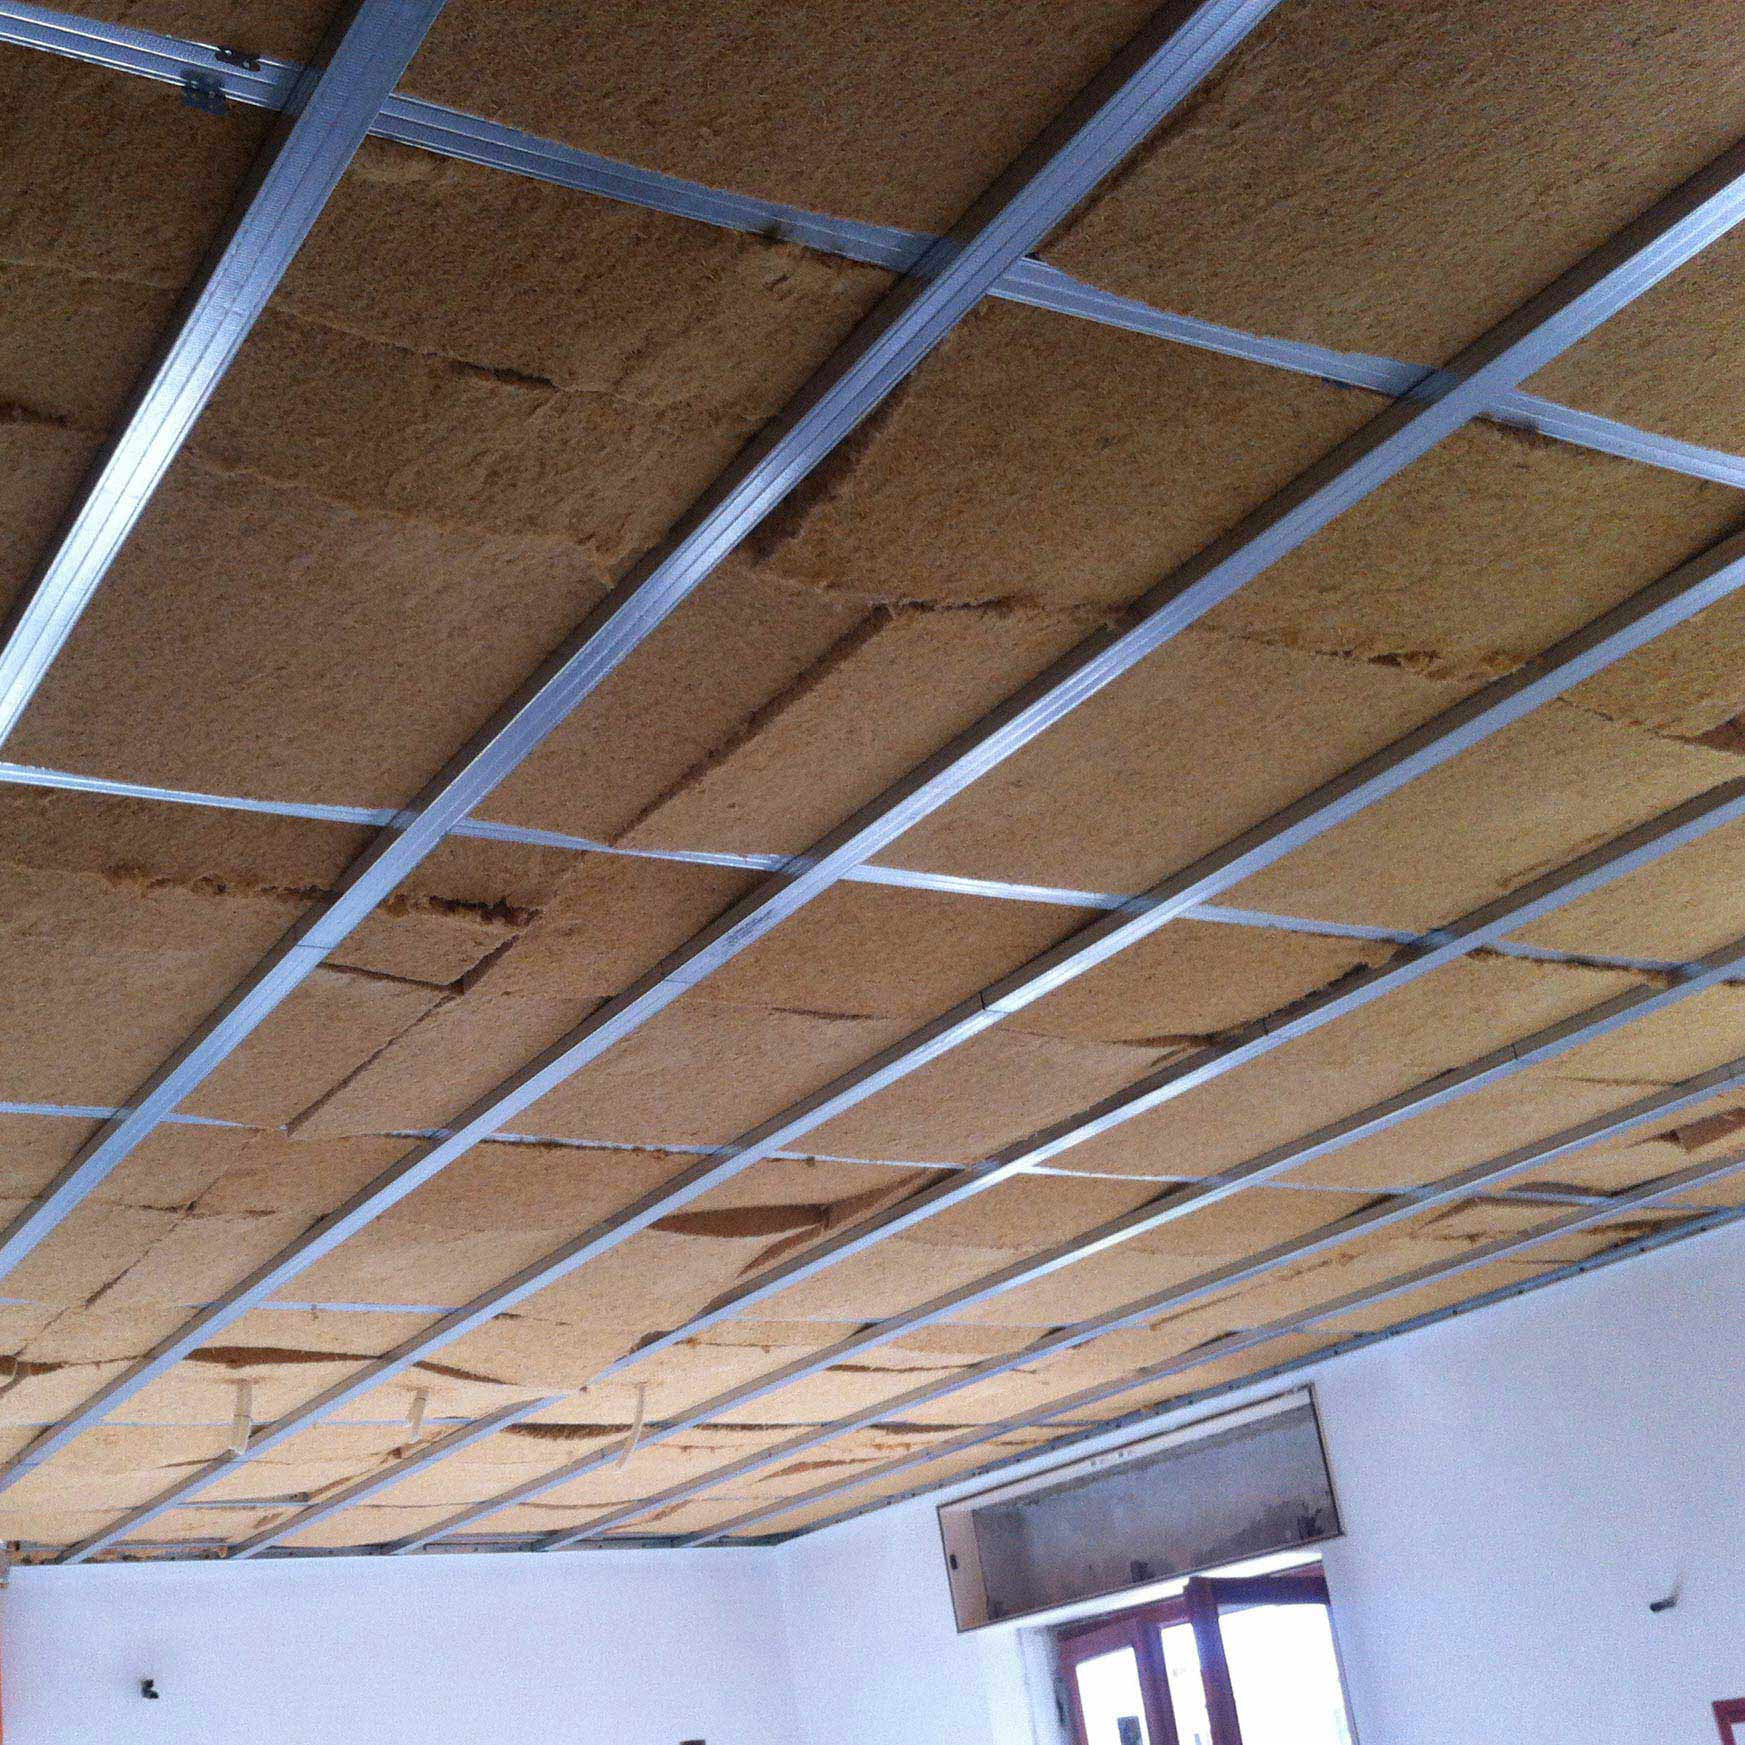 Flexible fiber wood FiberTherm Flex density 60kg/mc ceiling insulation